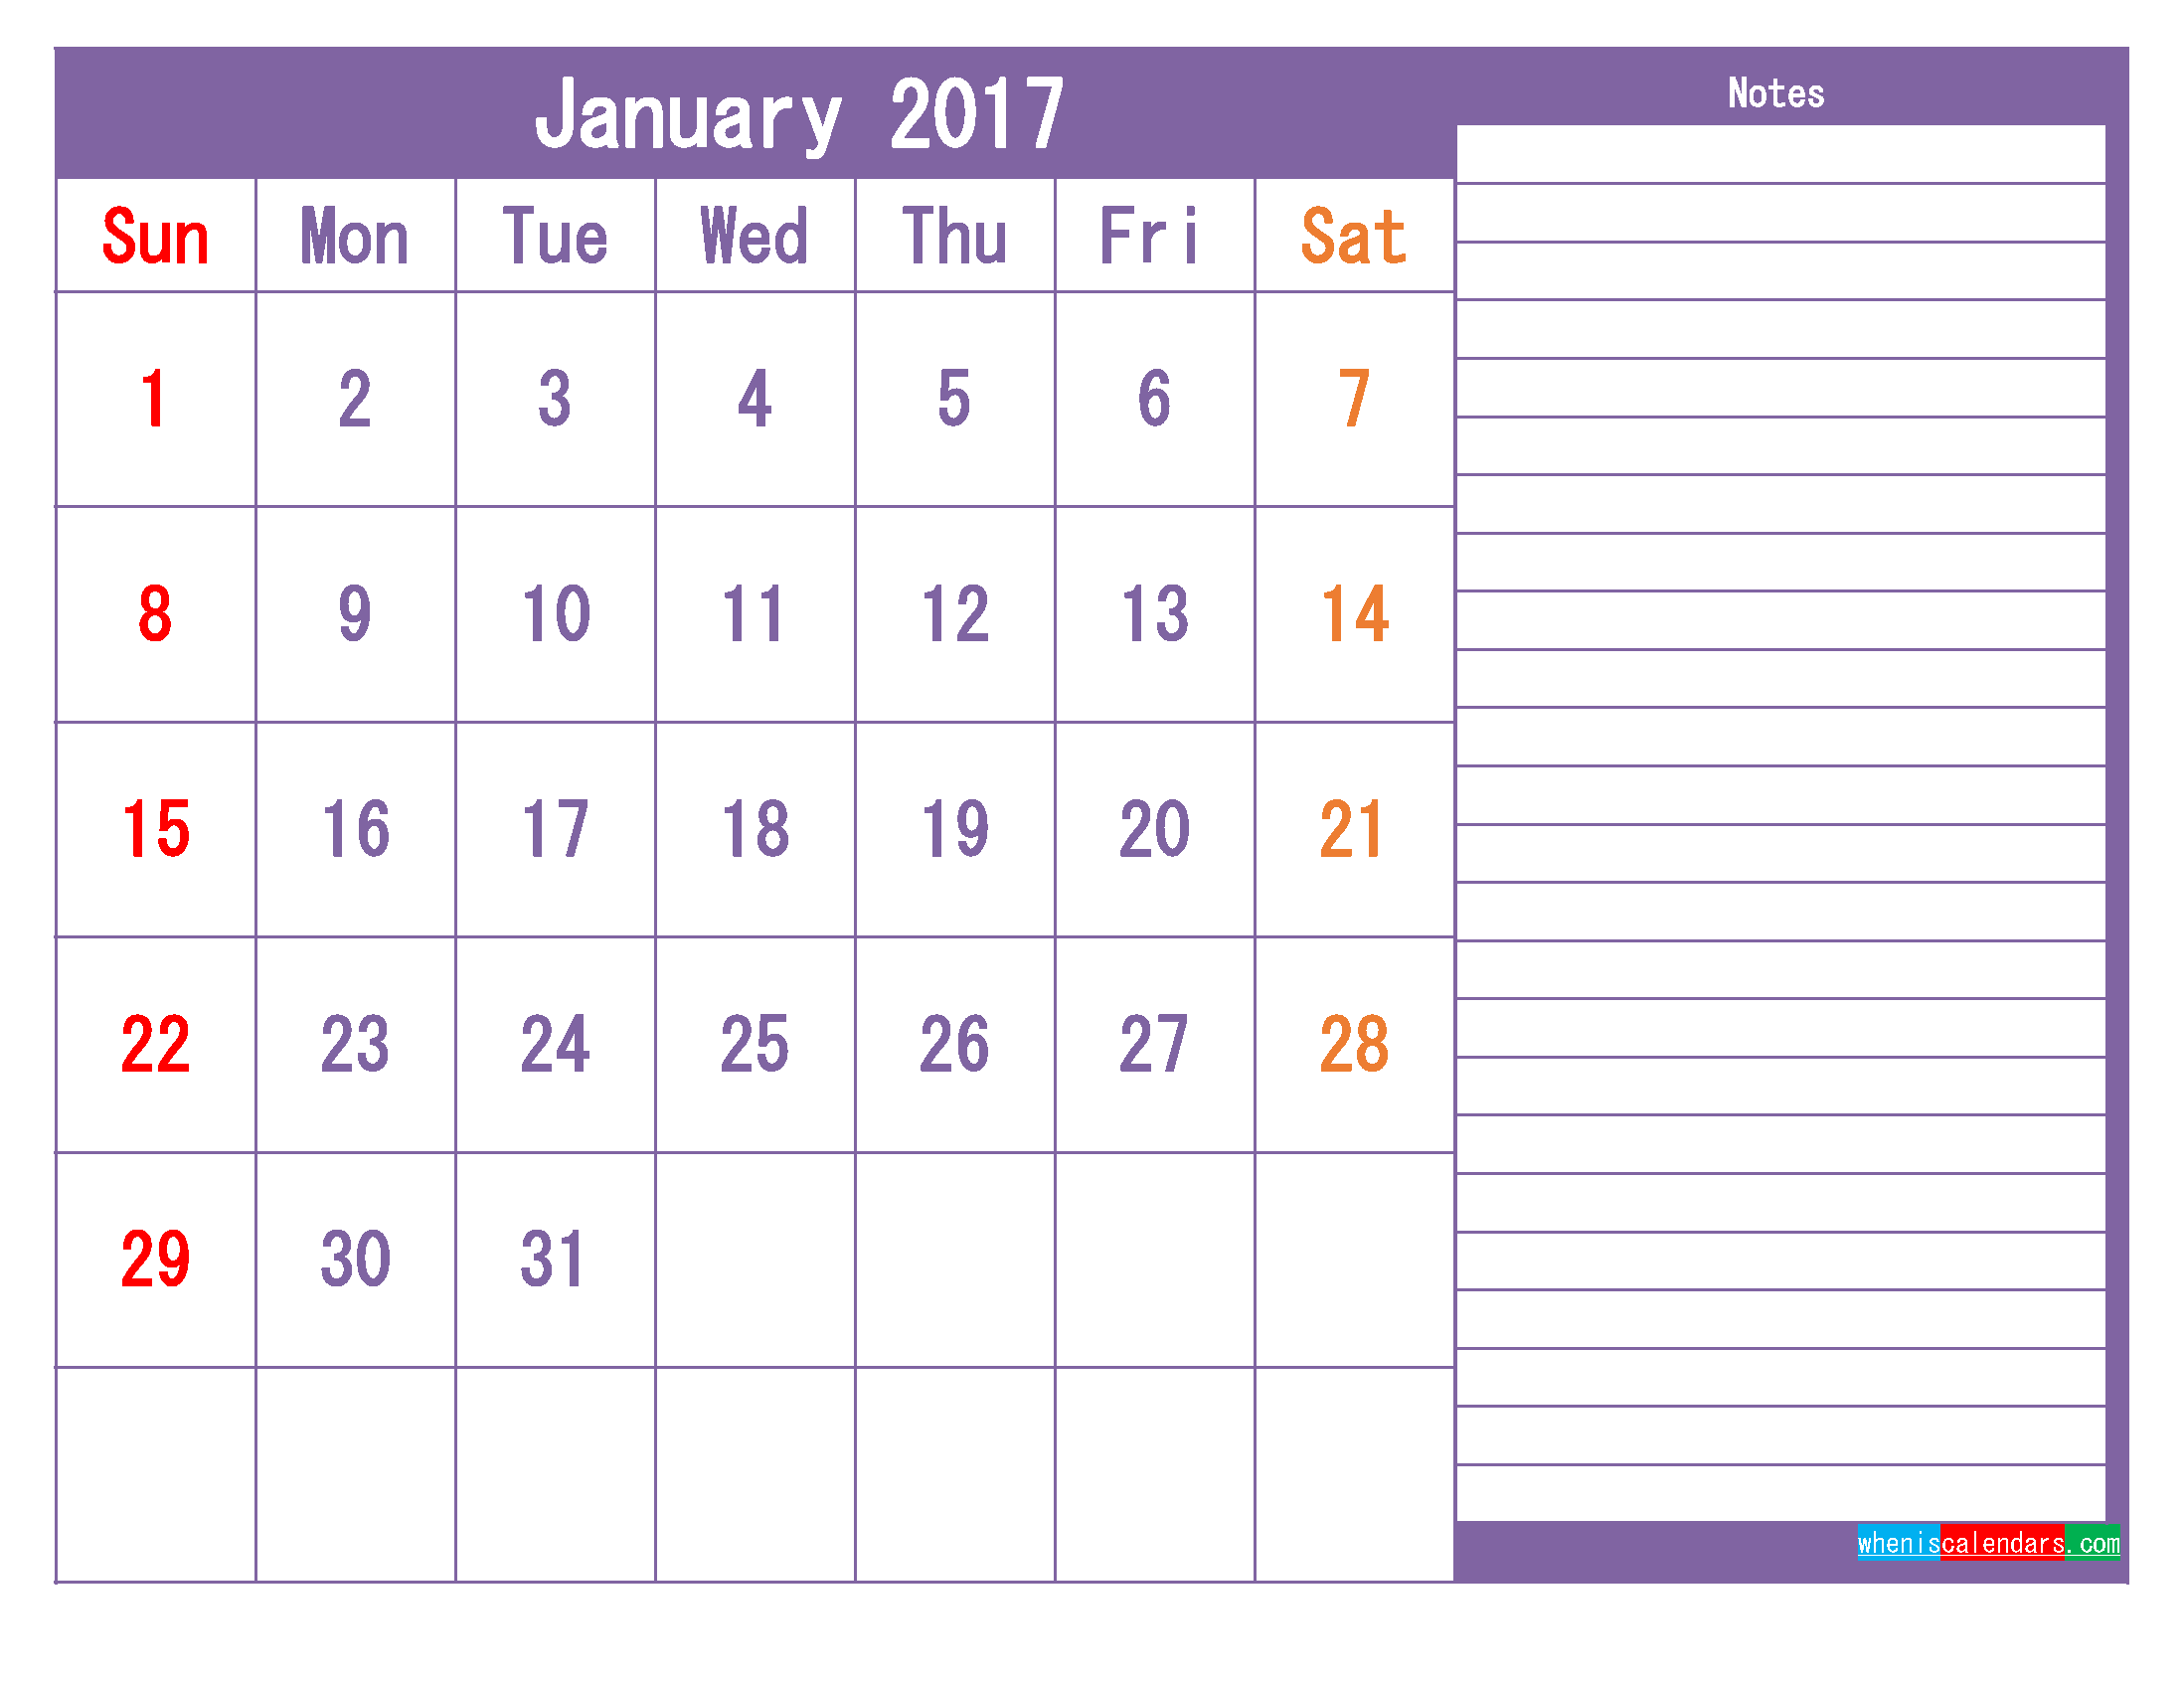 January 2017 Printable Calendar Template as PDF and PNG